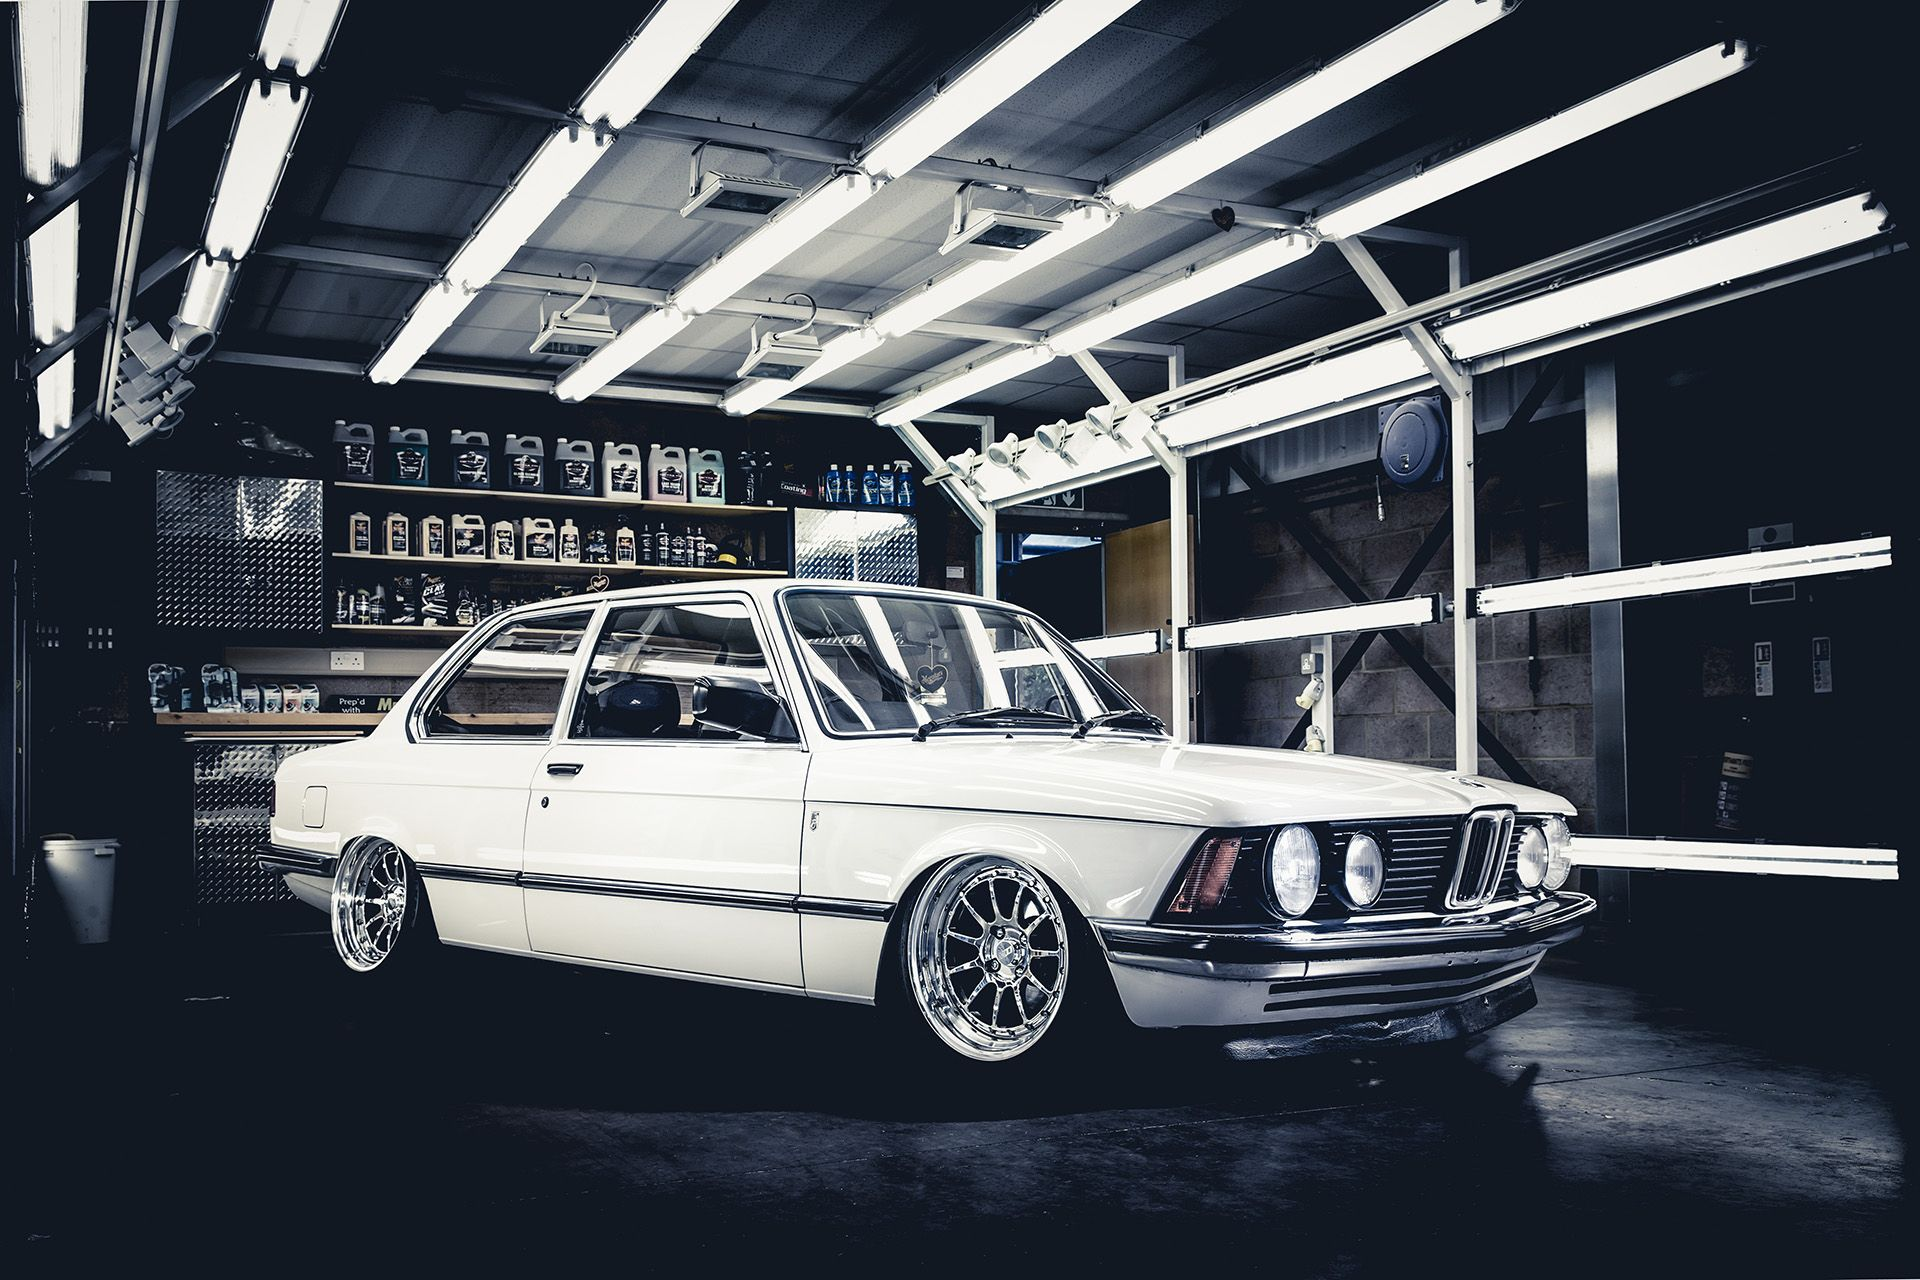 BMW E21 Wallpapers - Top Free BMW E21 Backgrounds - WallpaperAccess